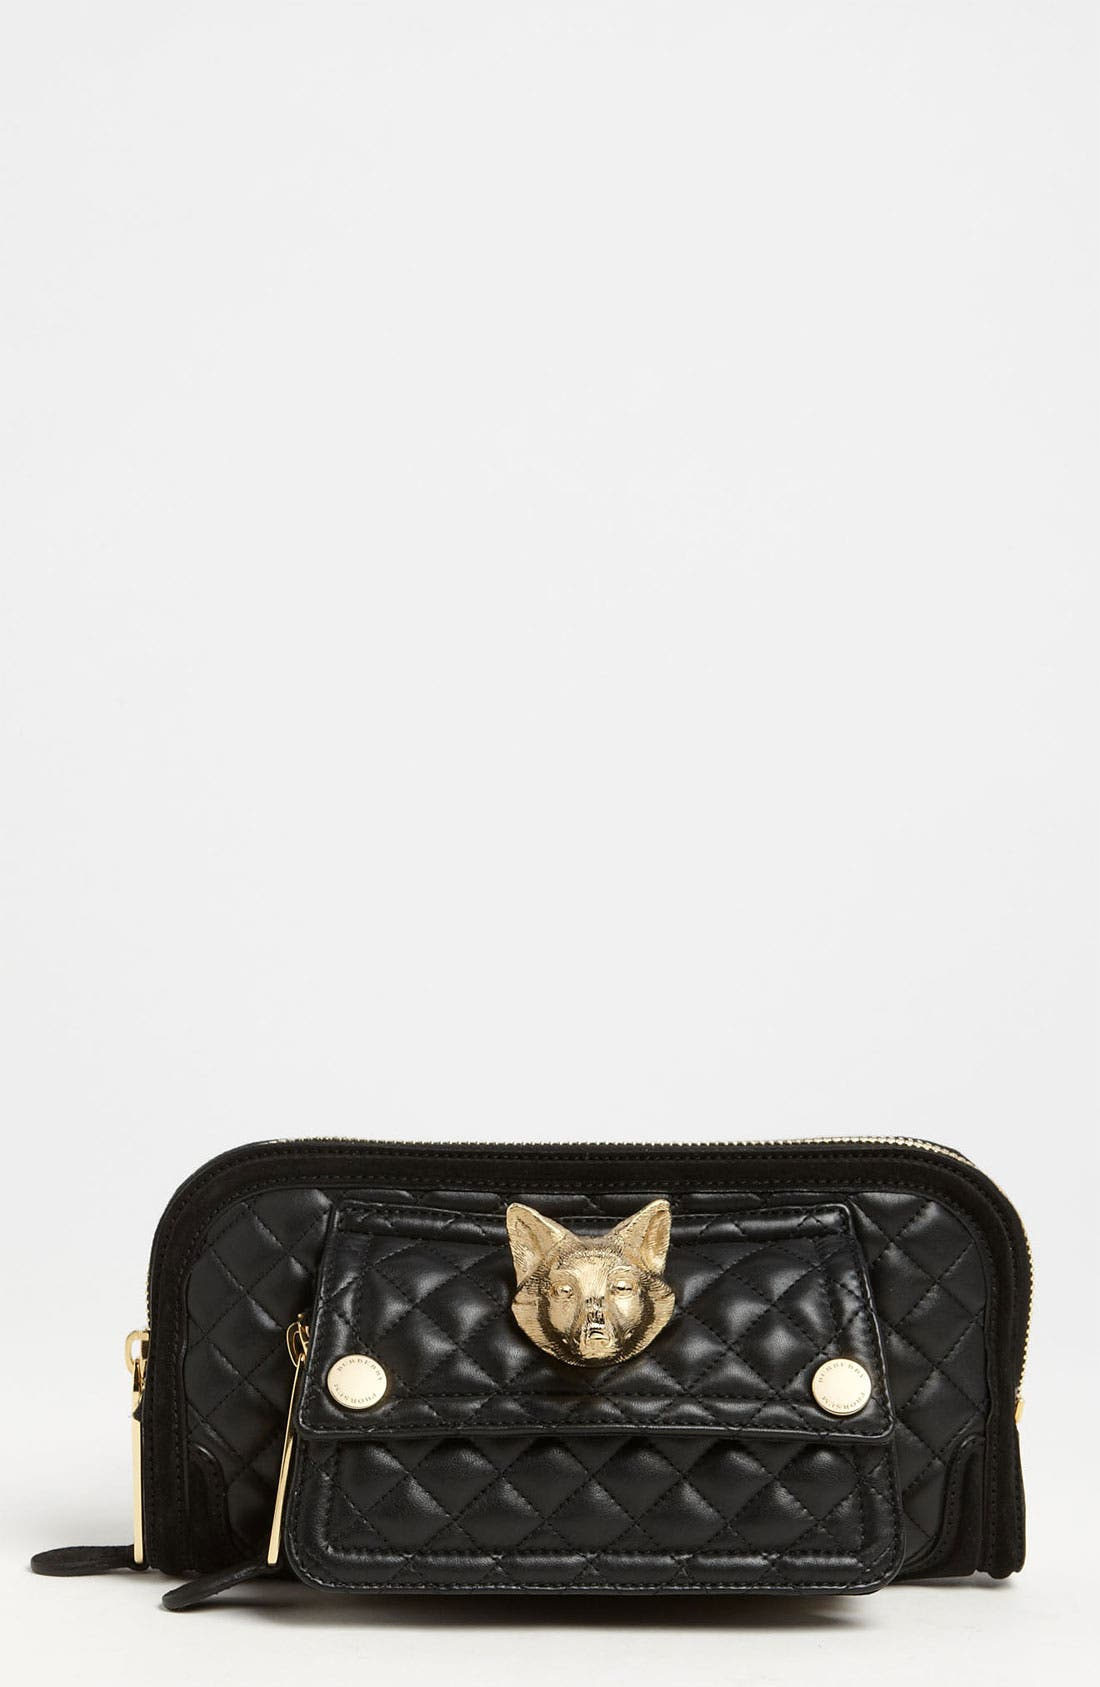 Alternate Image 1 Selected - Burberry Prorsum Quilted Leather Clutch